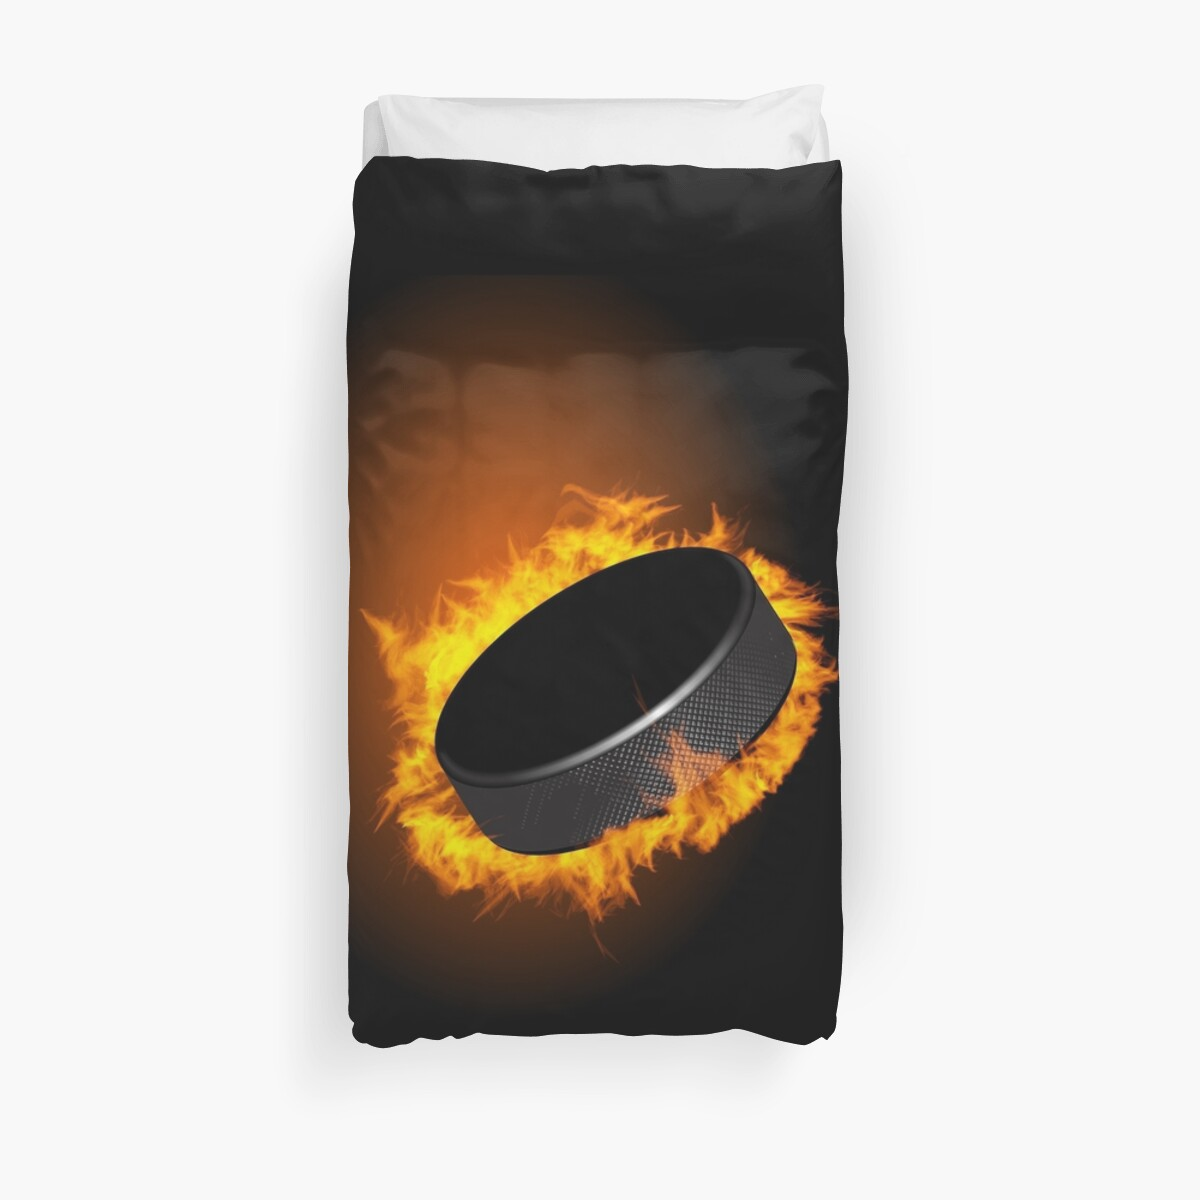 Burning Hockey Puck  iPhone 5 / iPhone 4 Case  / Samsung Galaxy Cases / Pillow / Tote Bag  / Duvet by CroDesign